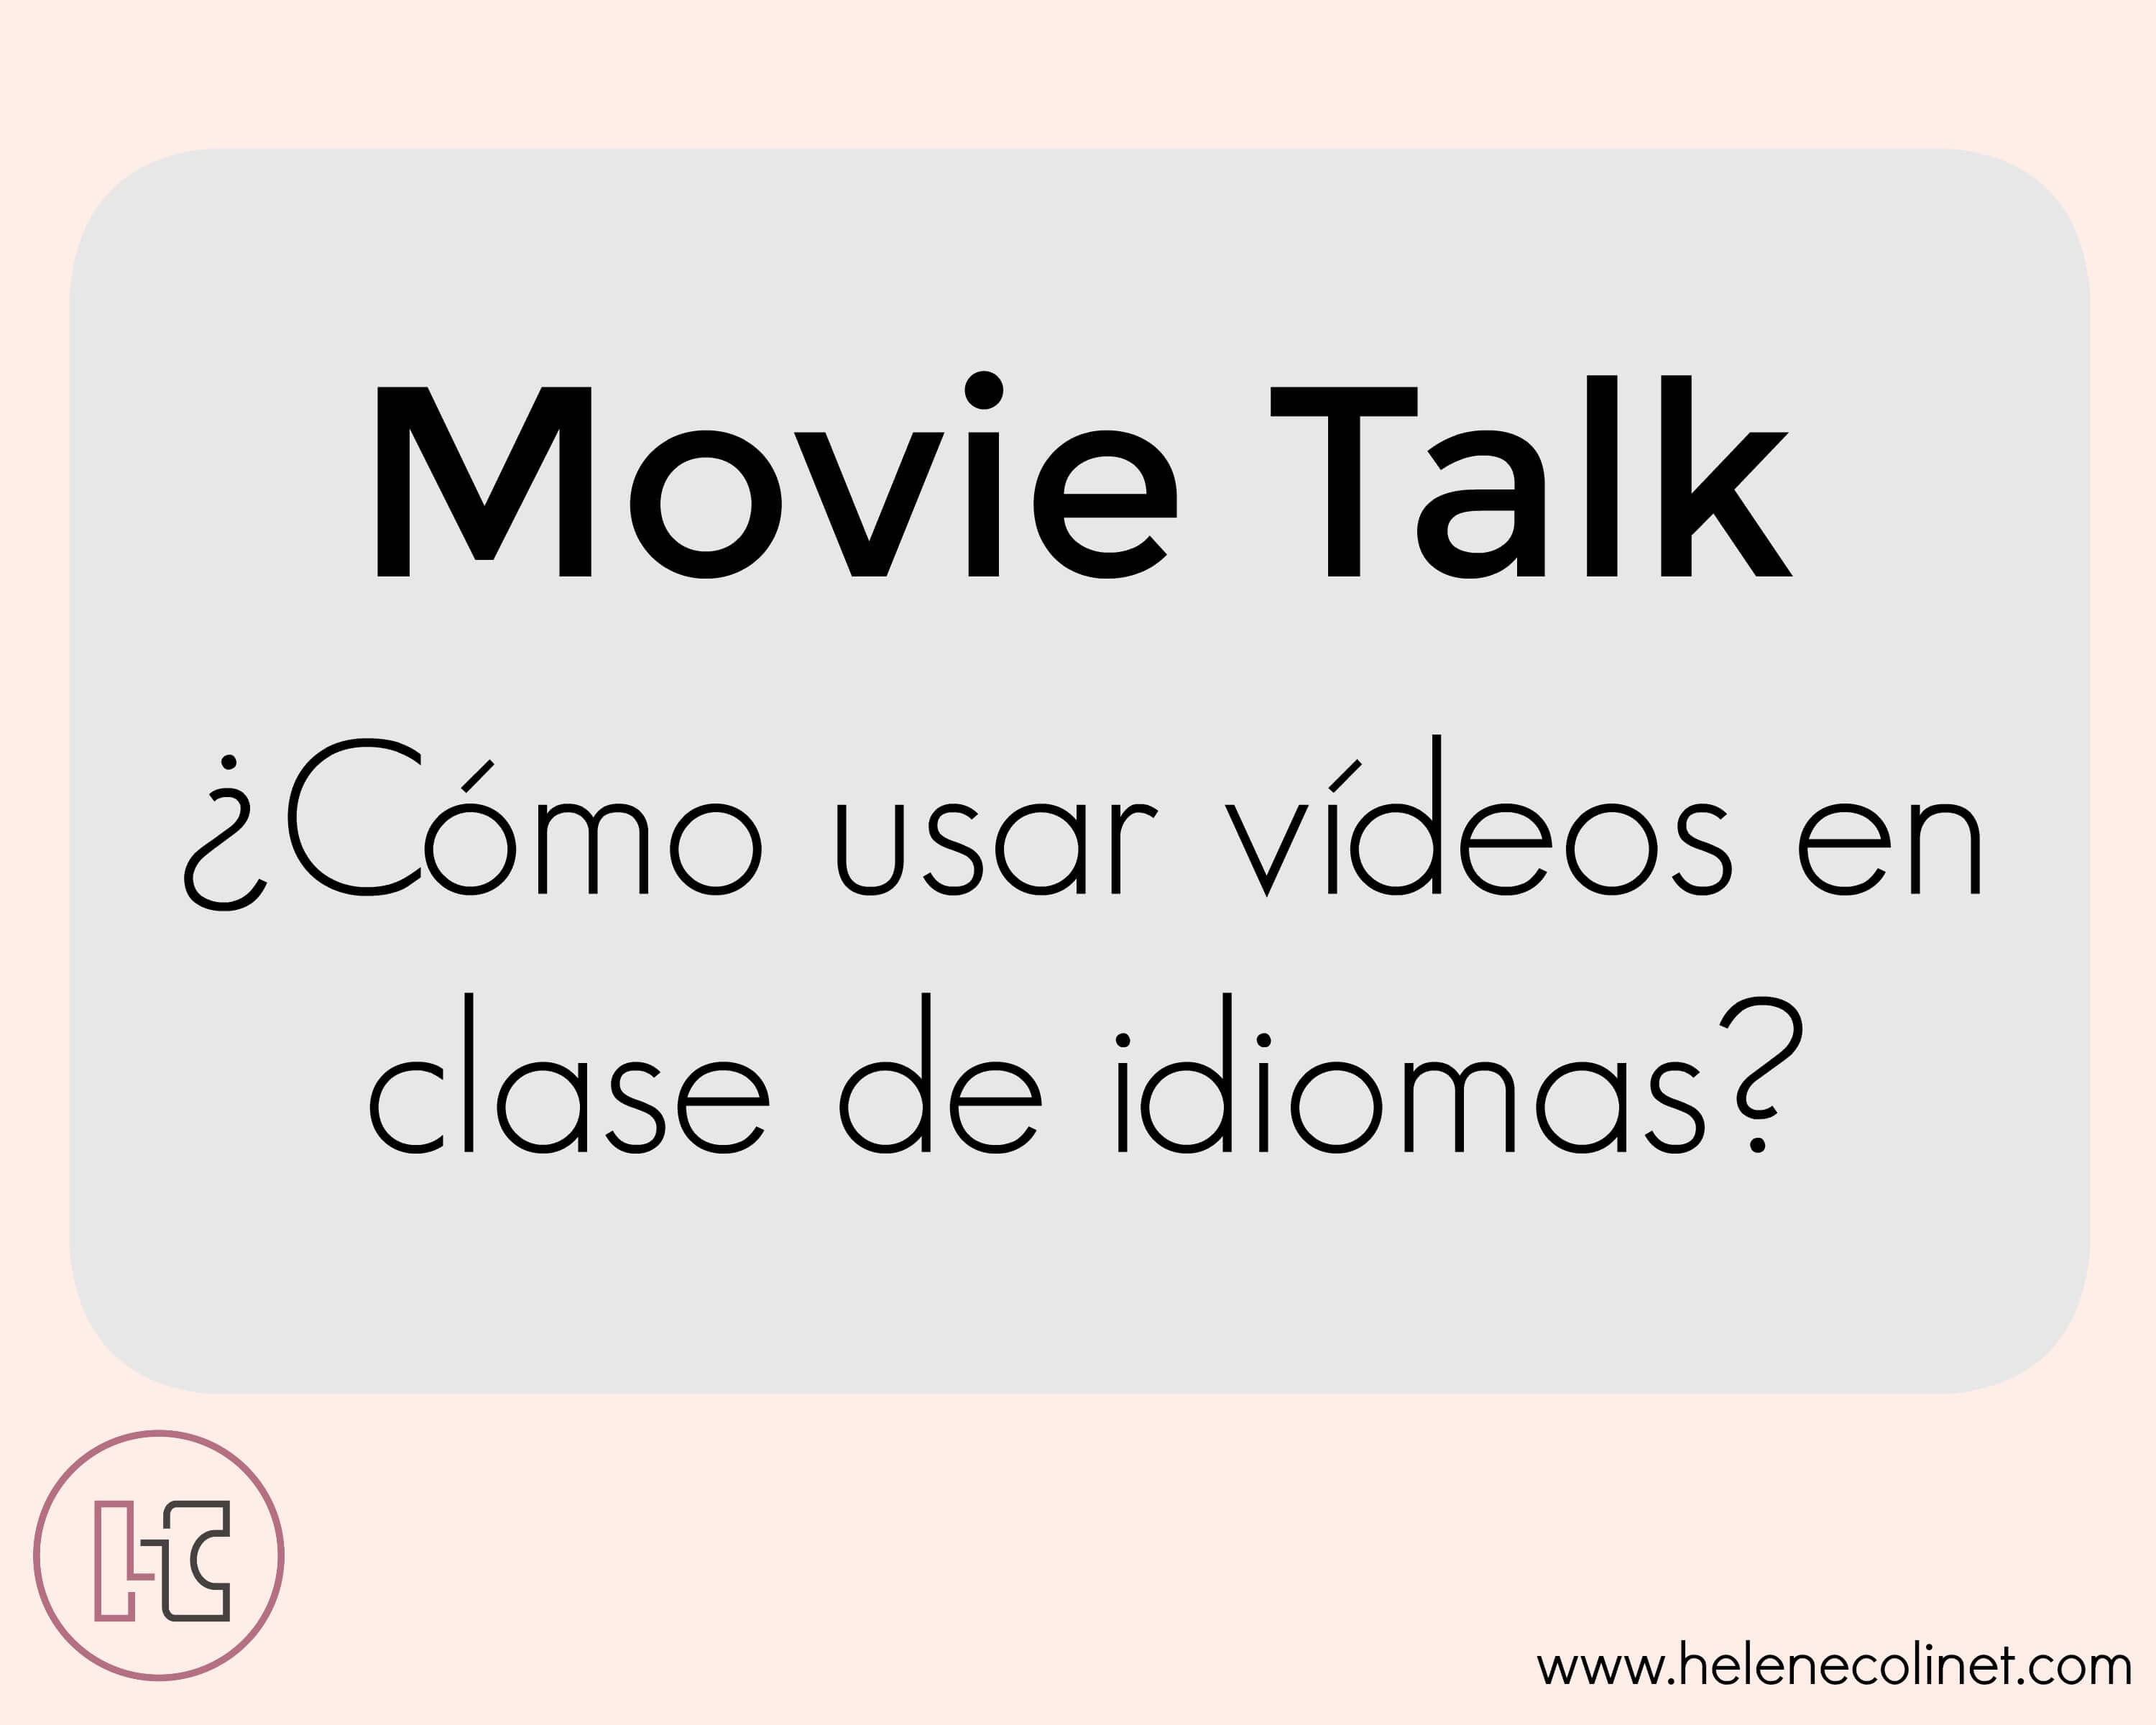 movie talk tprs helene colinet profesor